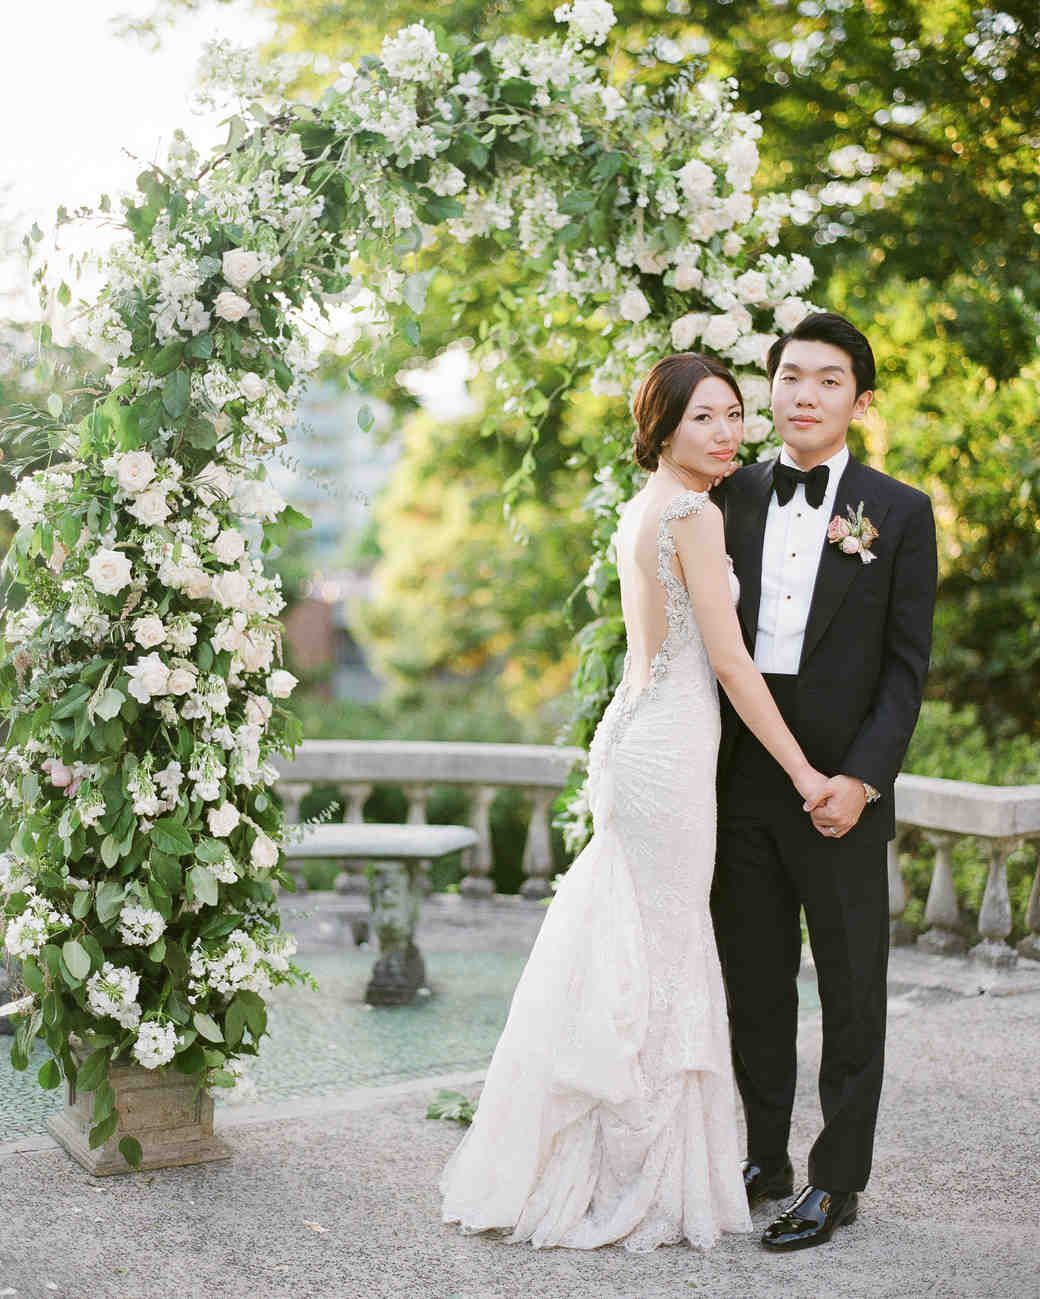 Wedding Flowers Vancouver Bc: A Dreamy Wedding At A Romantic Mansion In Vancouver